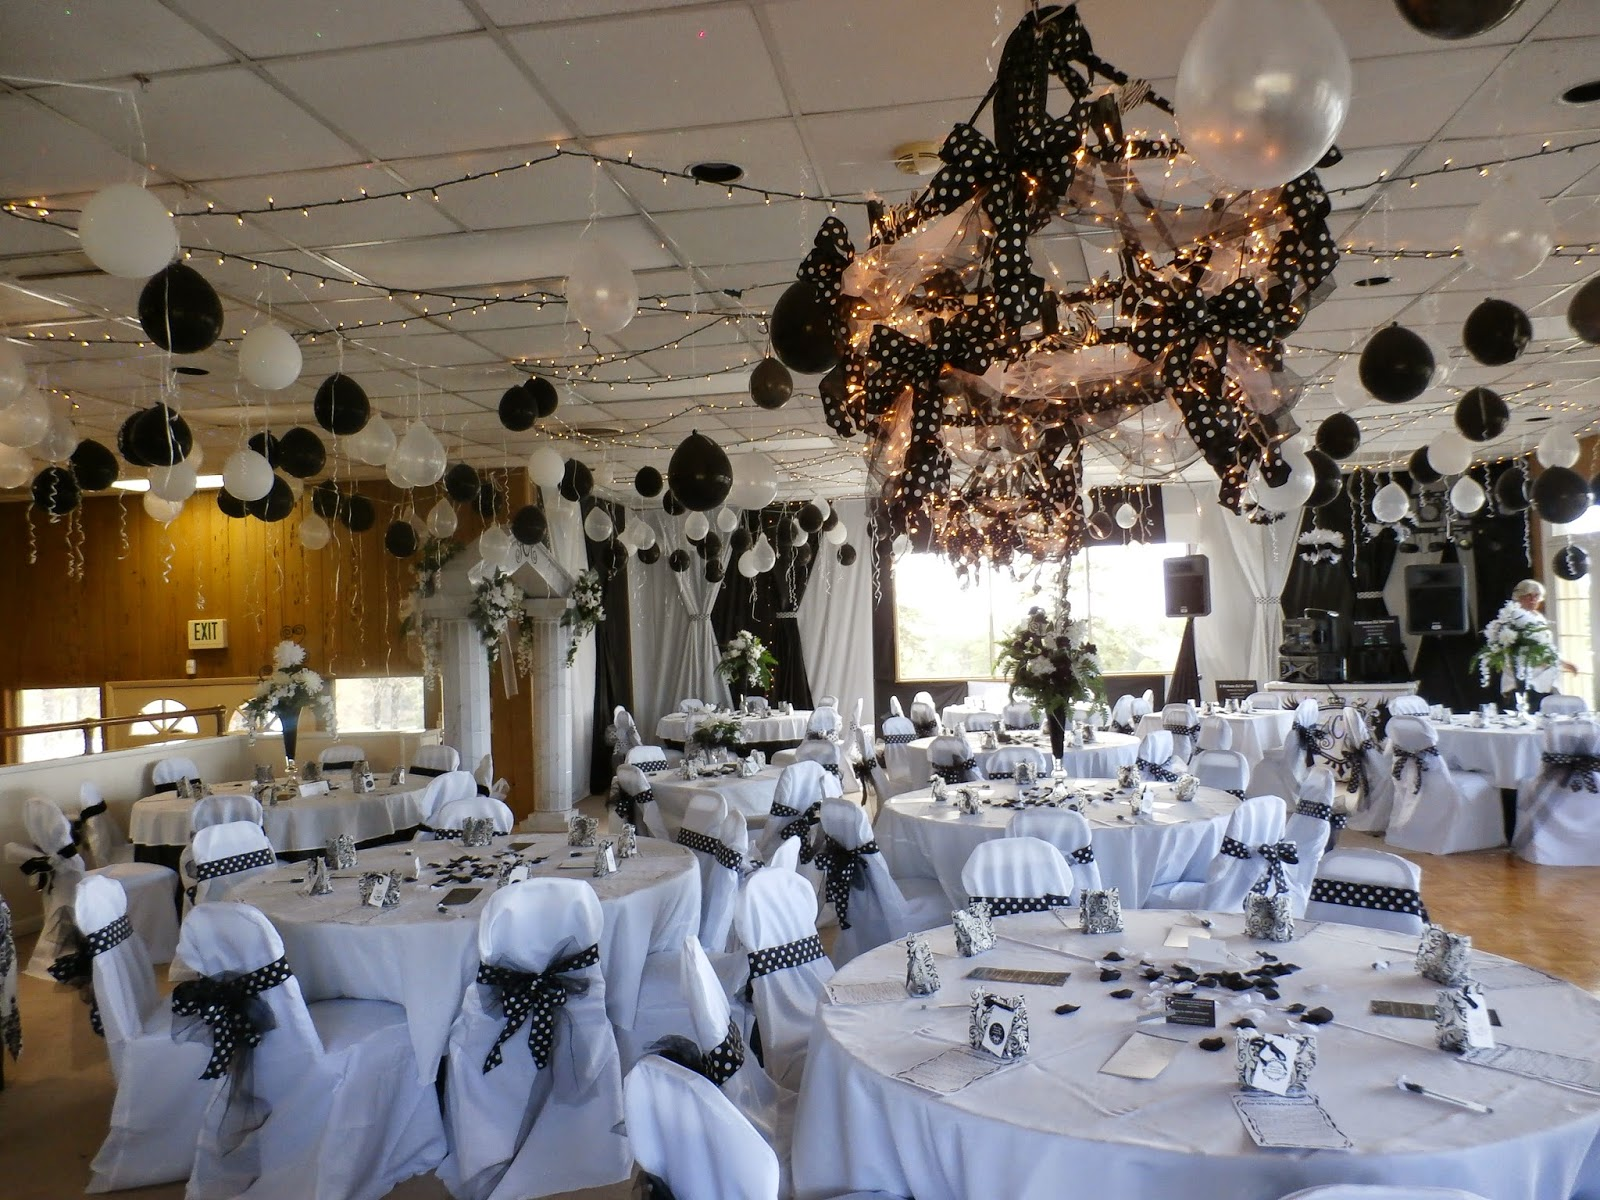 Wedding - Black and White Theme